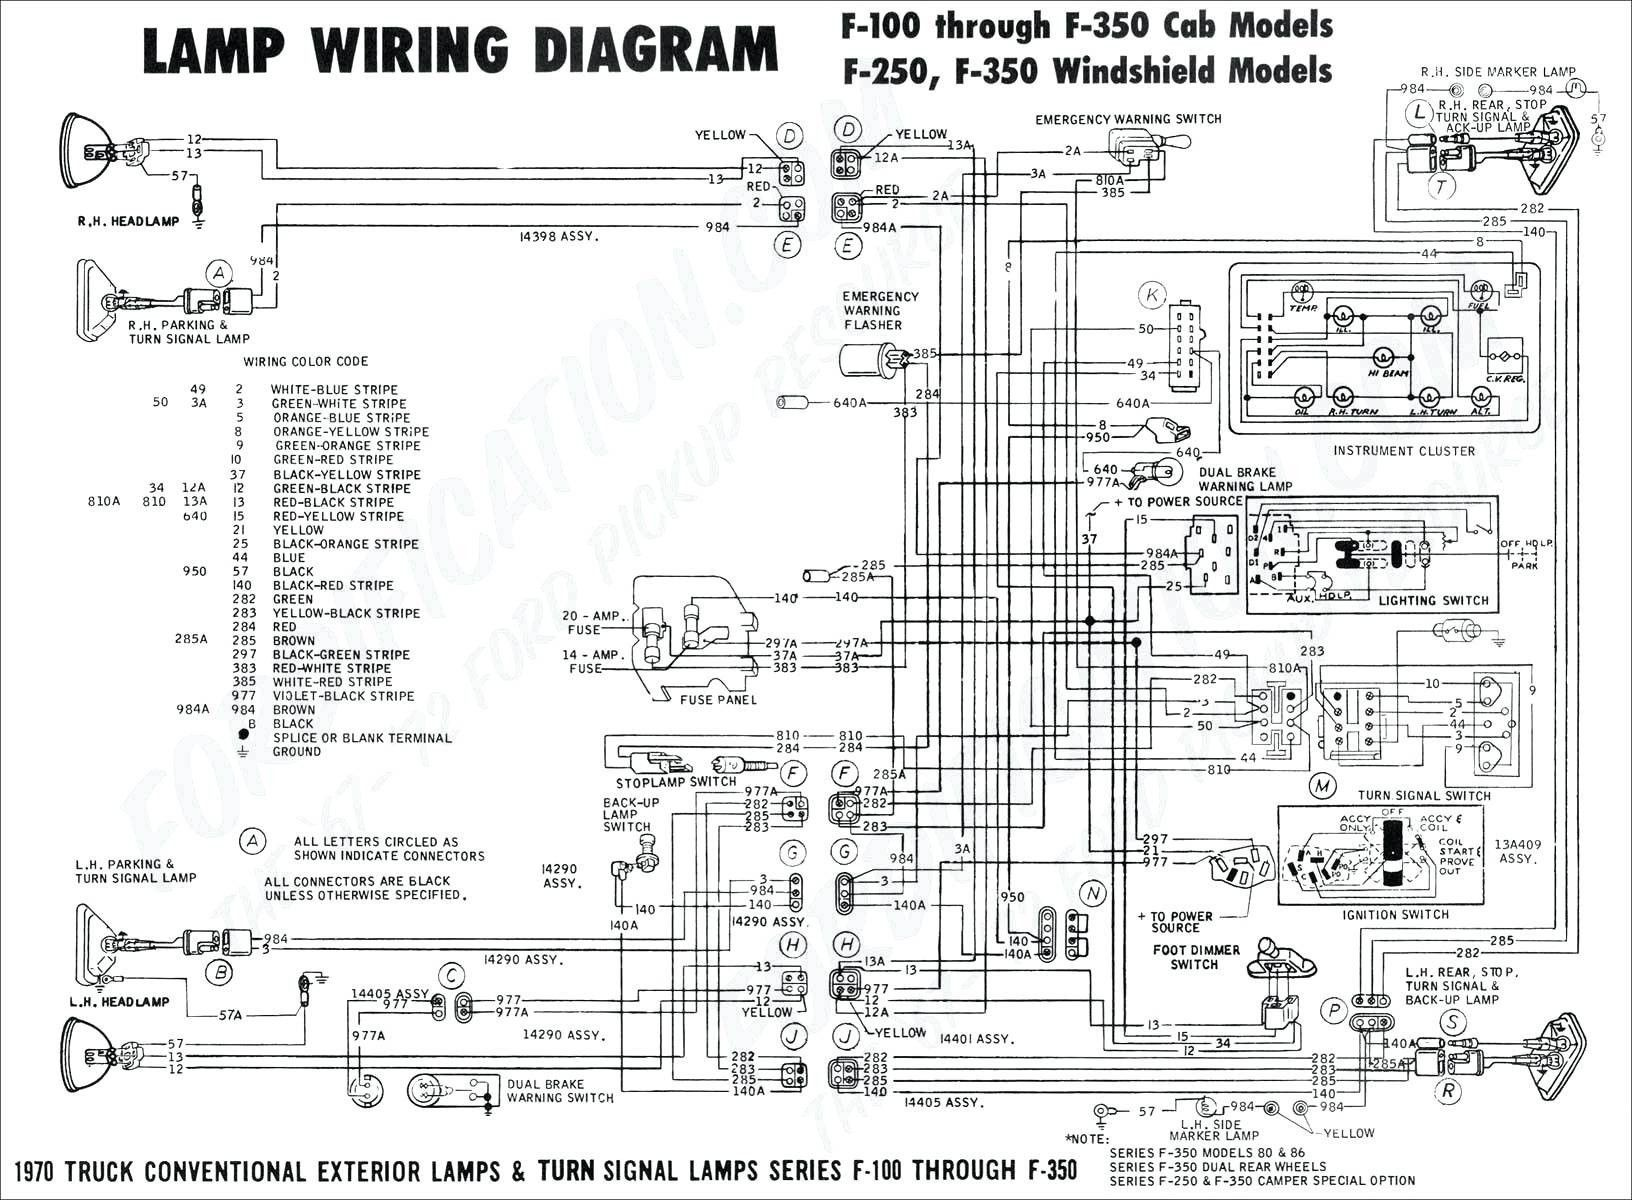 Inspirational 1990 Ford F150 Wiring Diagram In 2020 Electrical Wiring Diagram Trailer Wiring Diagram Diagram